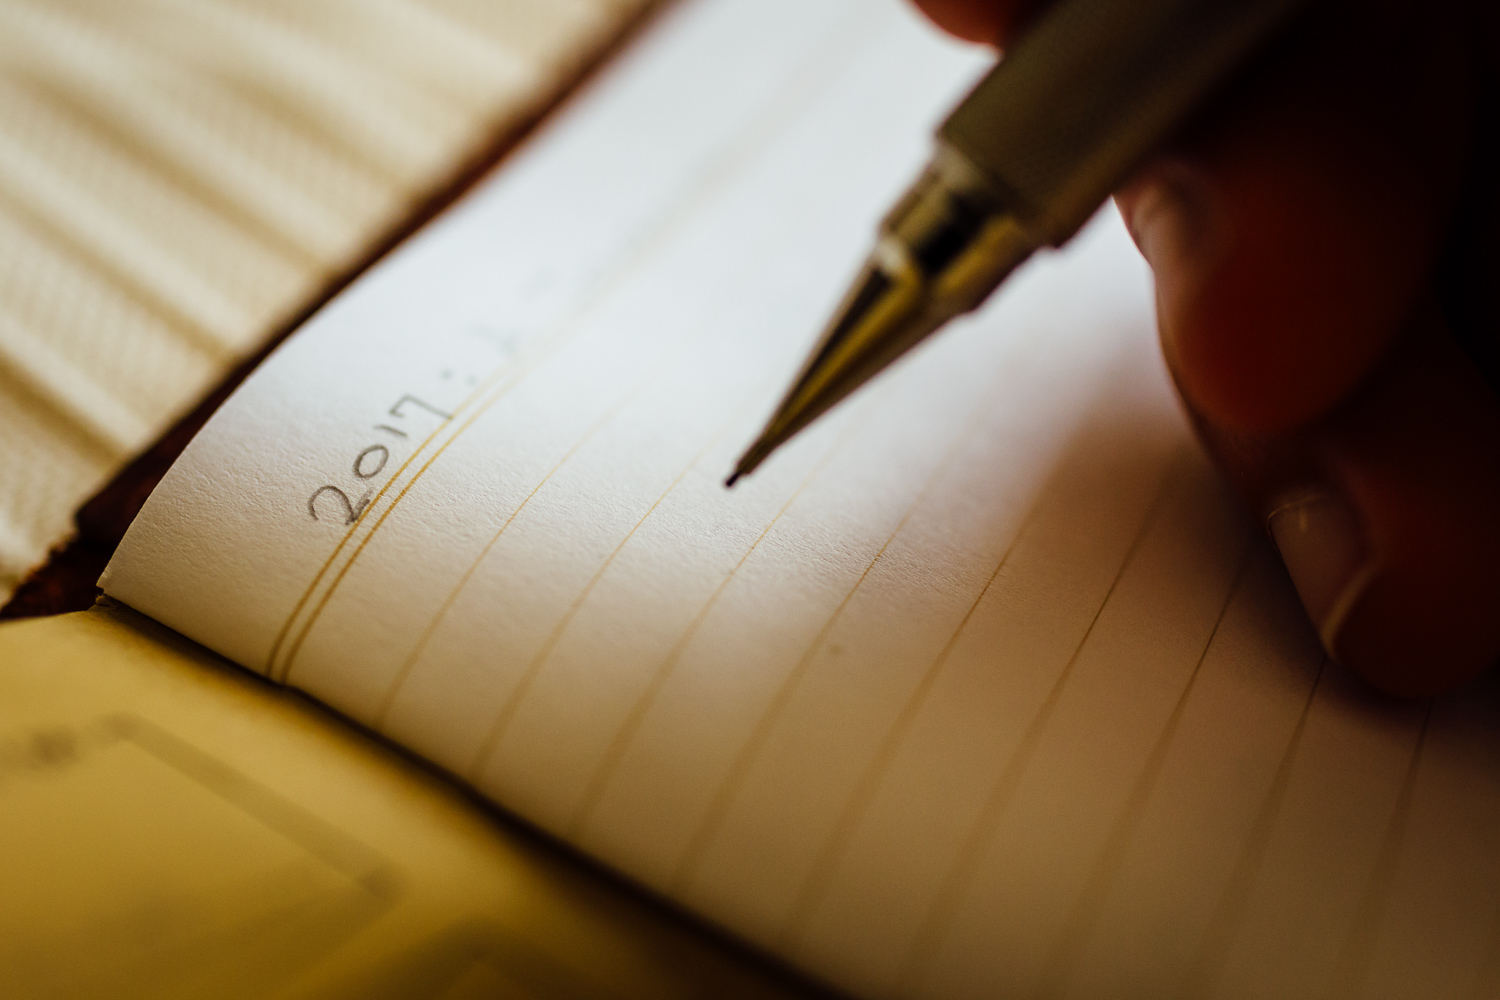 Writing-Journal-Paper-Notebook-Thoughts-Durazo-Photography.jpg